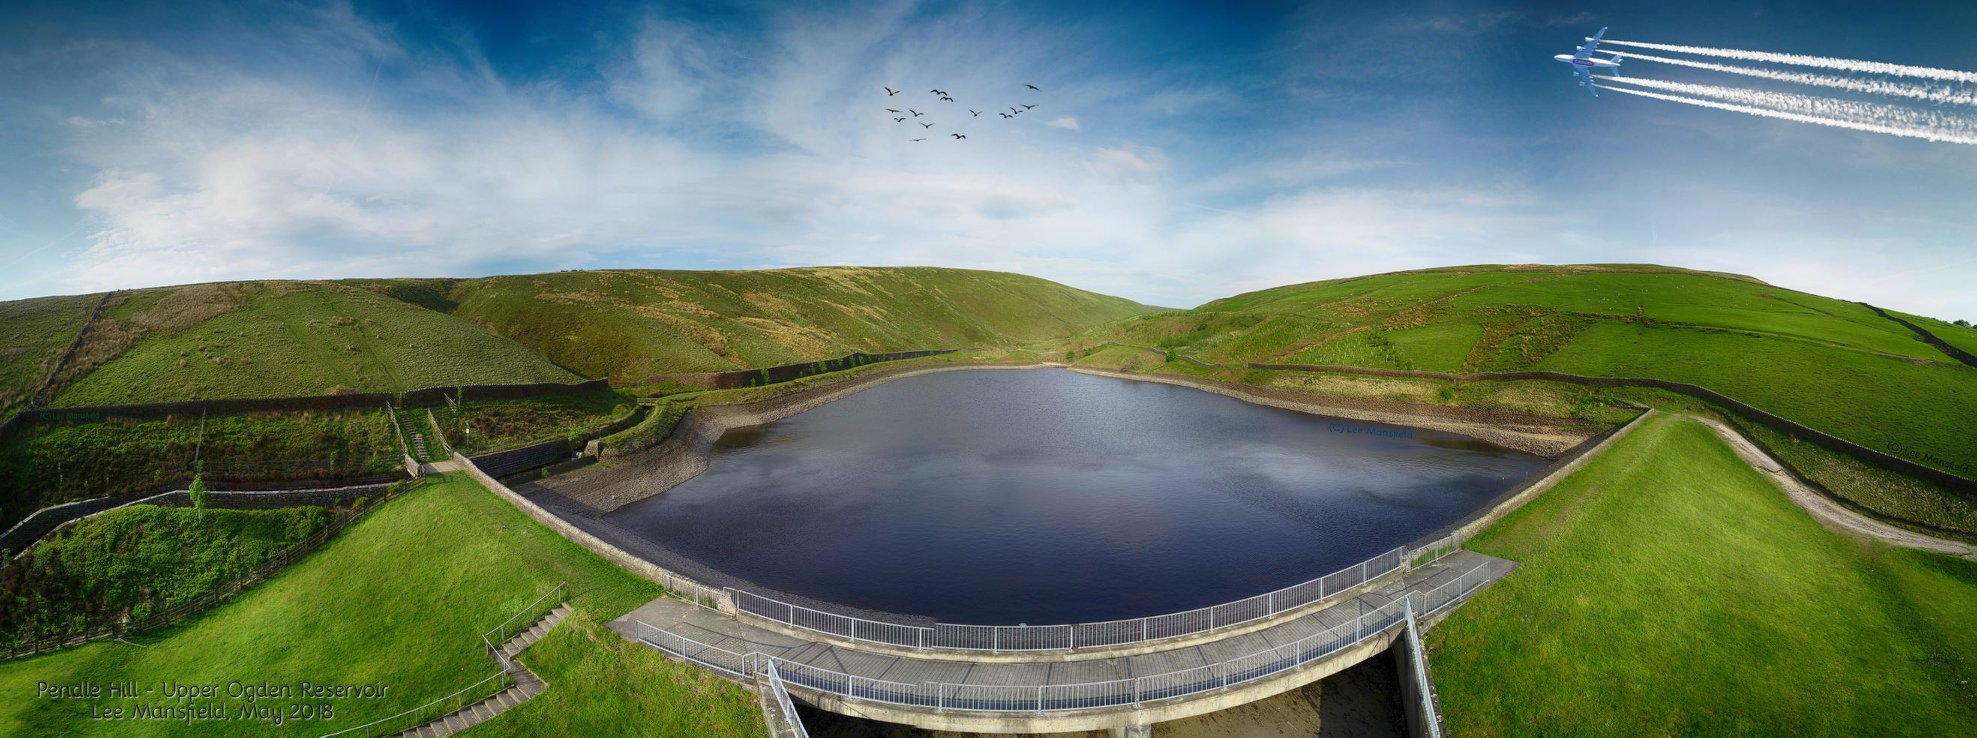 Pendle Hill - Upper Ogden Reservoir